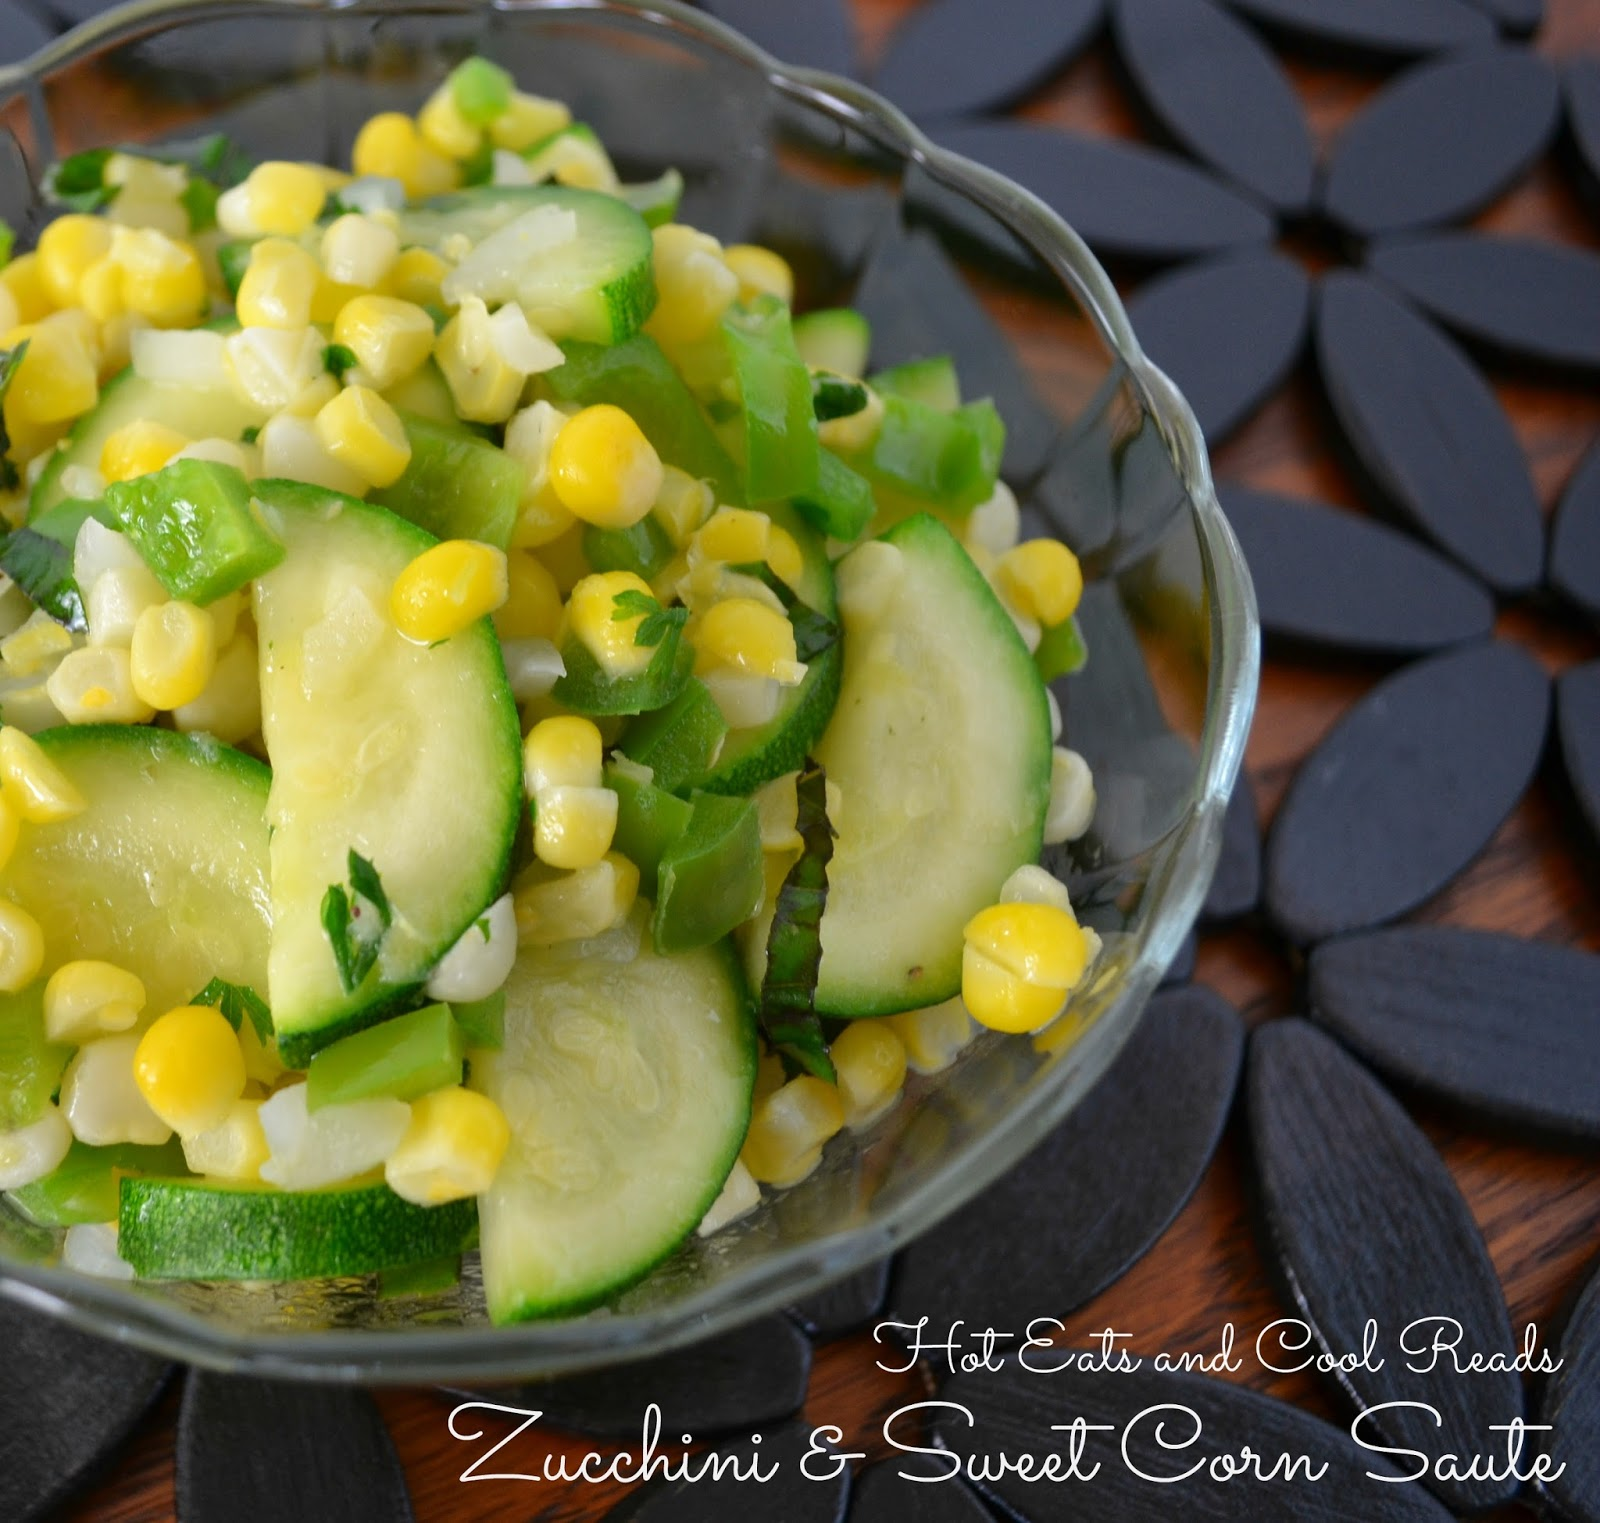 ... side! Zucchini and Sweet Corn Saute from Hot Eats and Cool Reads